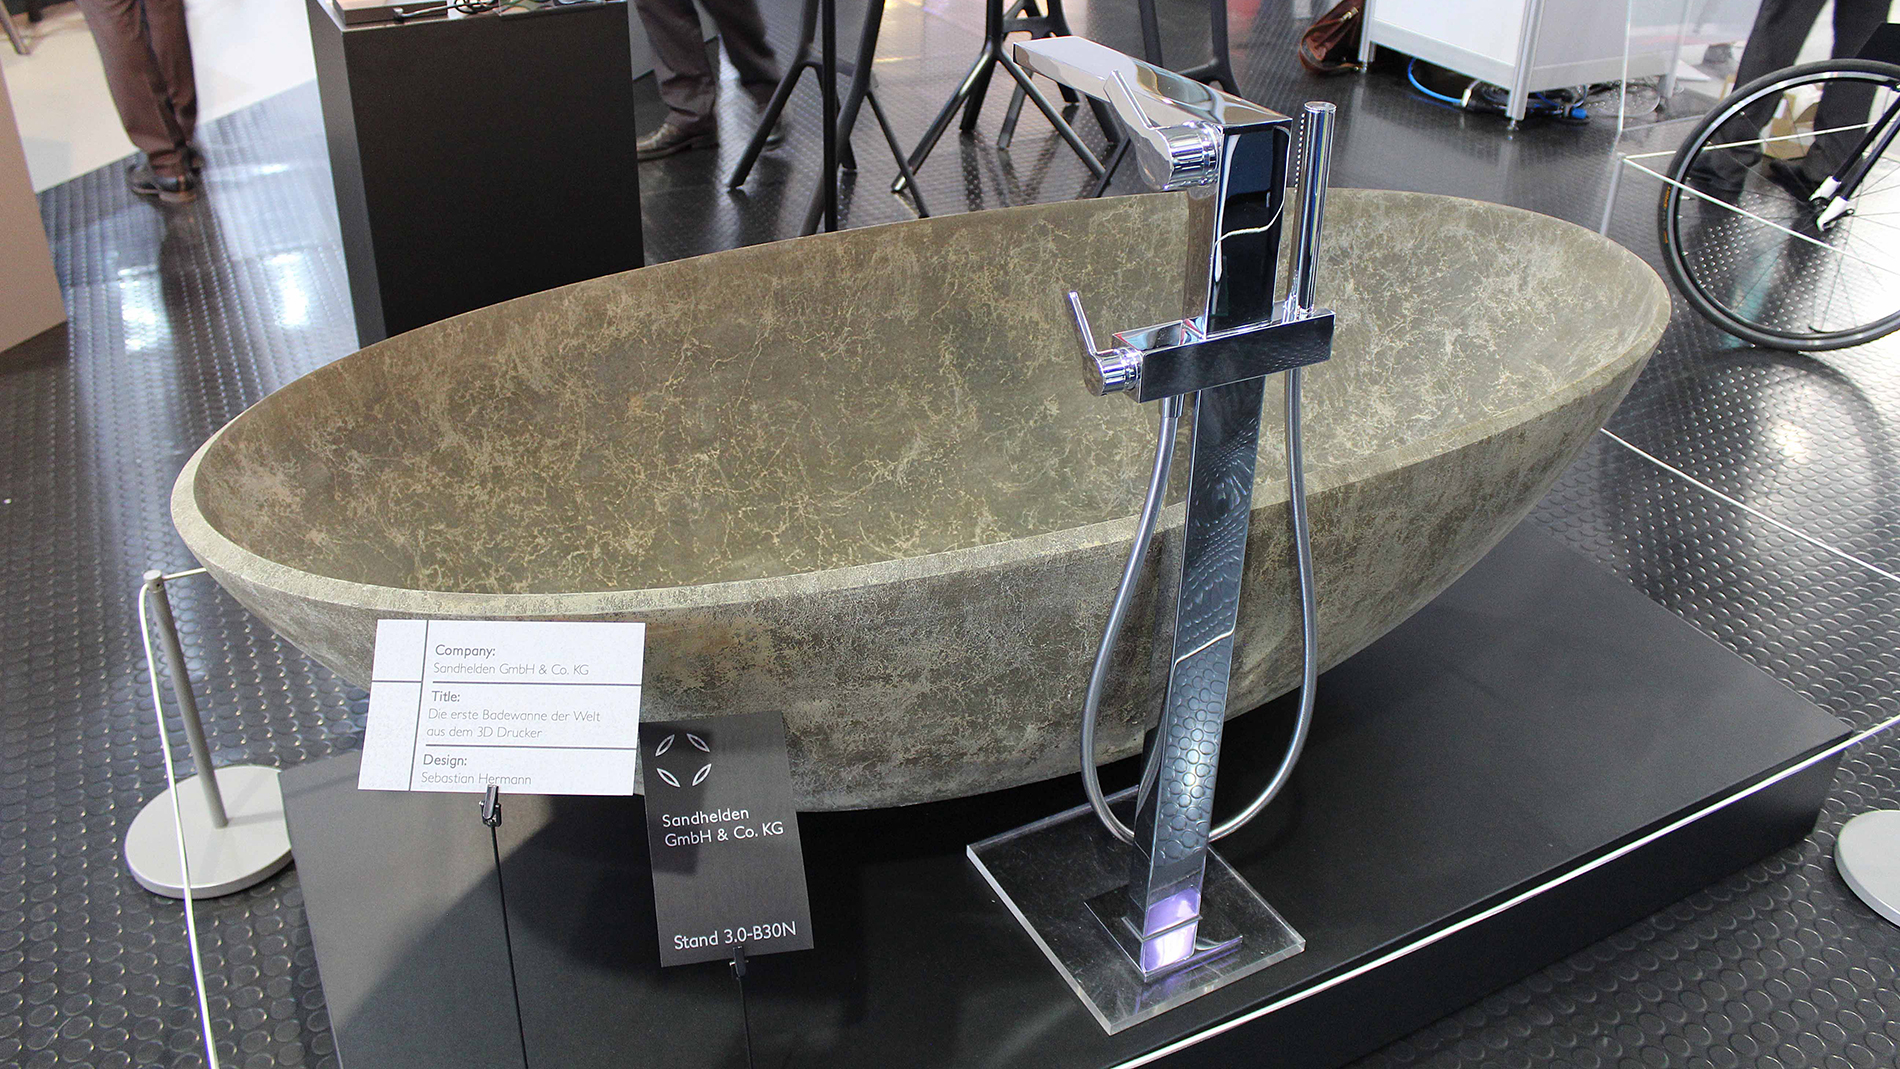 Public Choice Award: The world's first printed bathtub made of sand